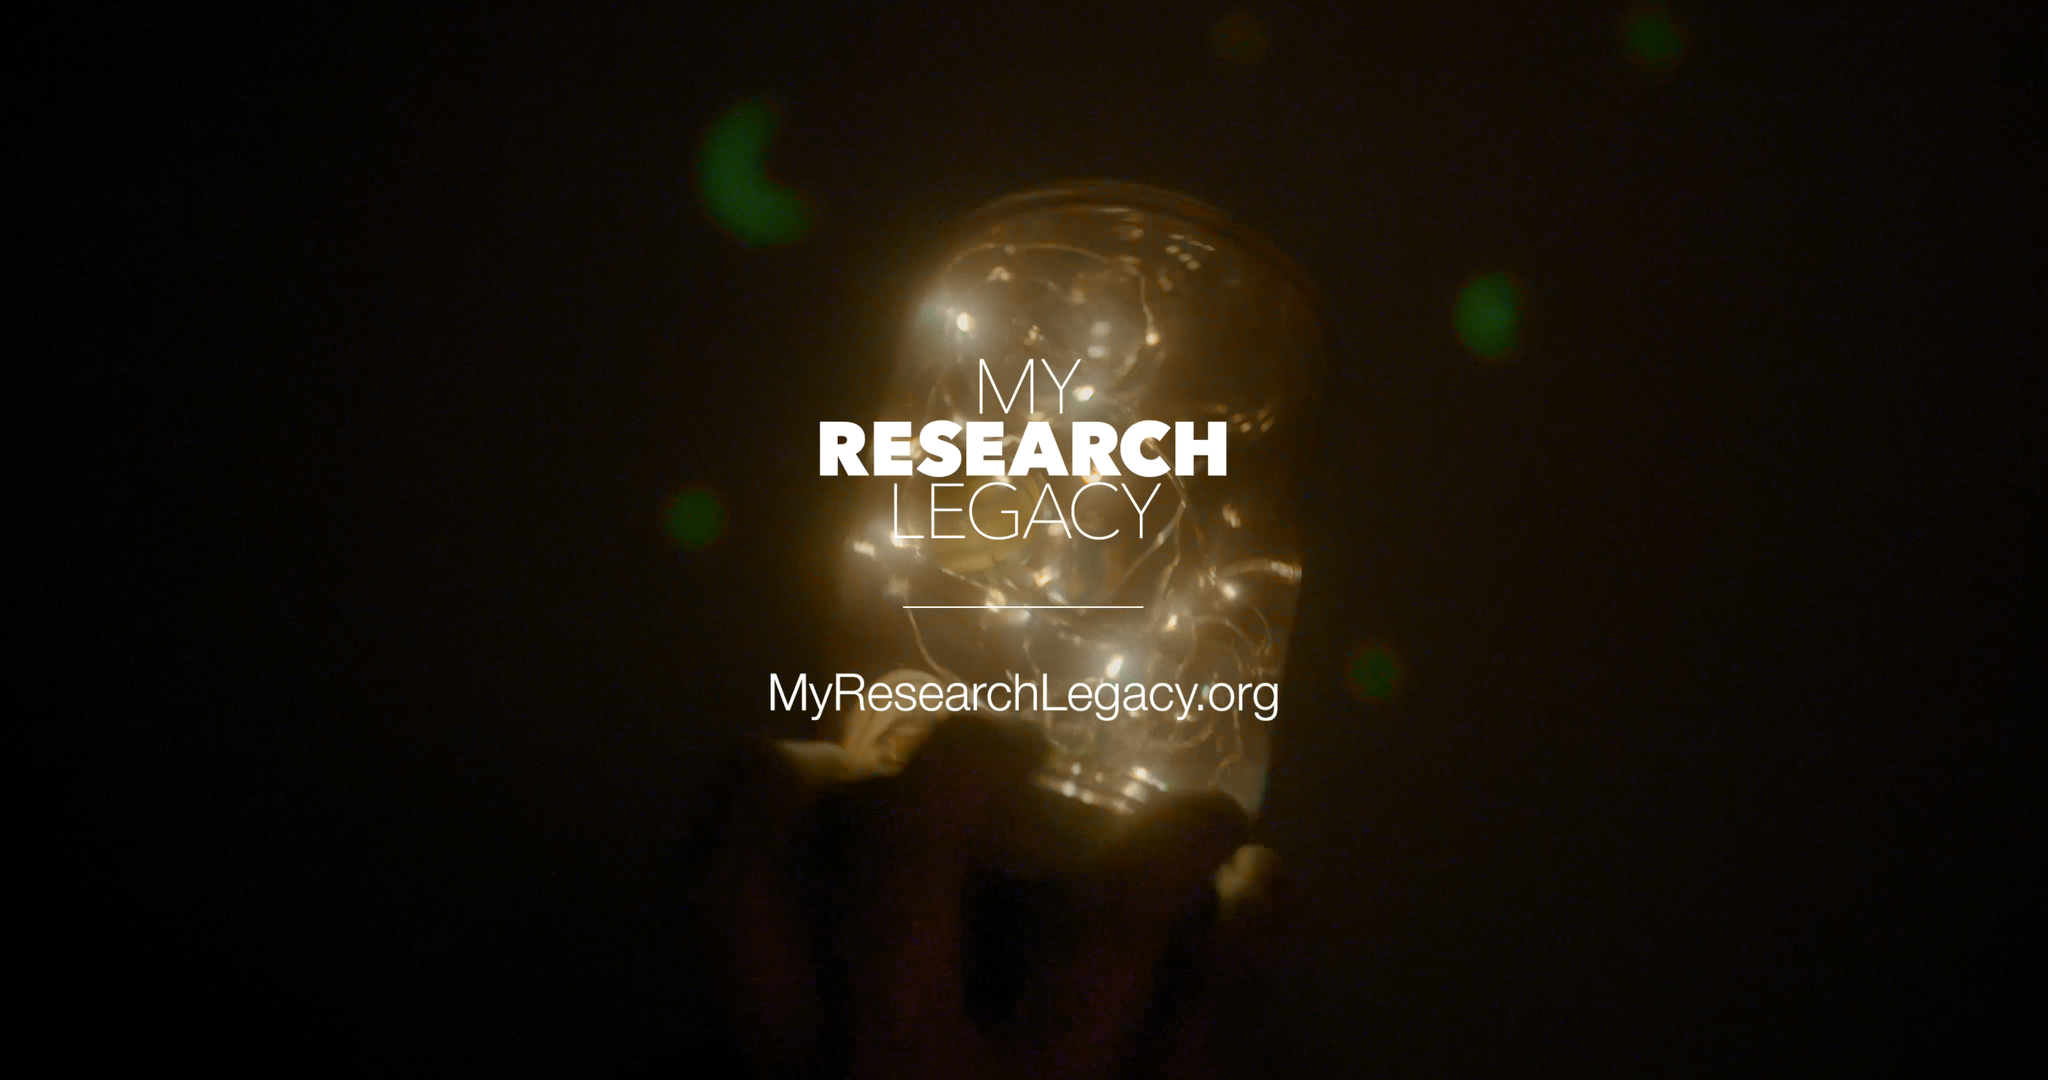 7MyResearchLegacy_1.39.1.png